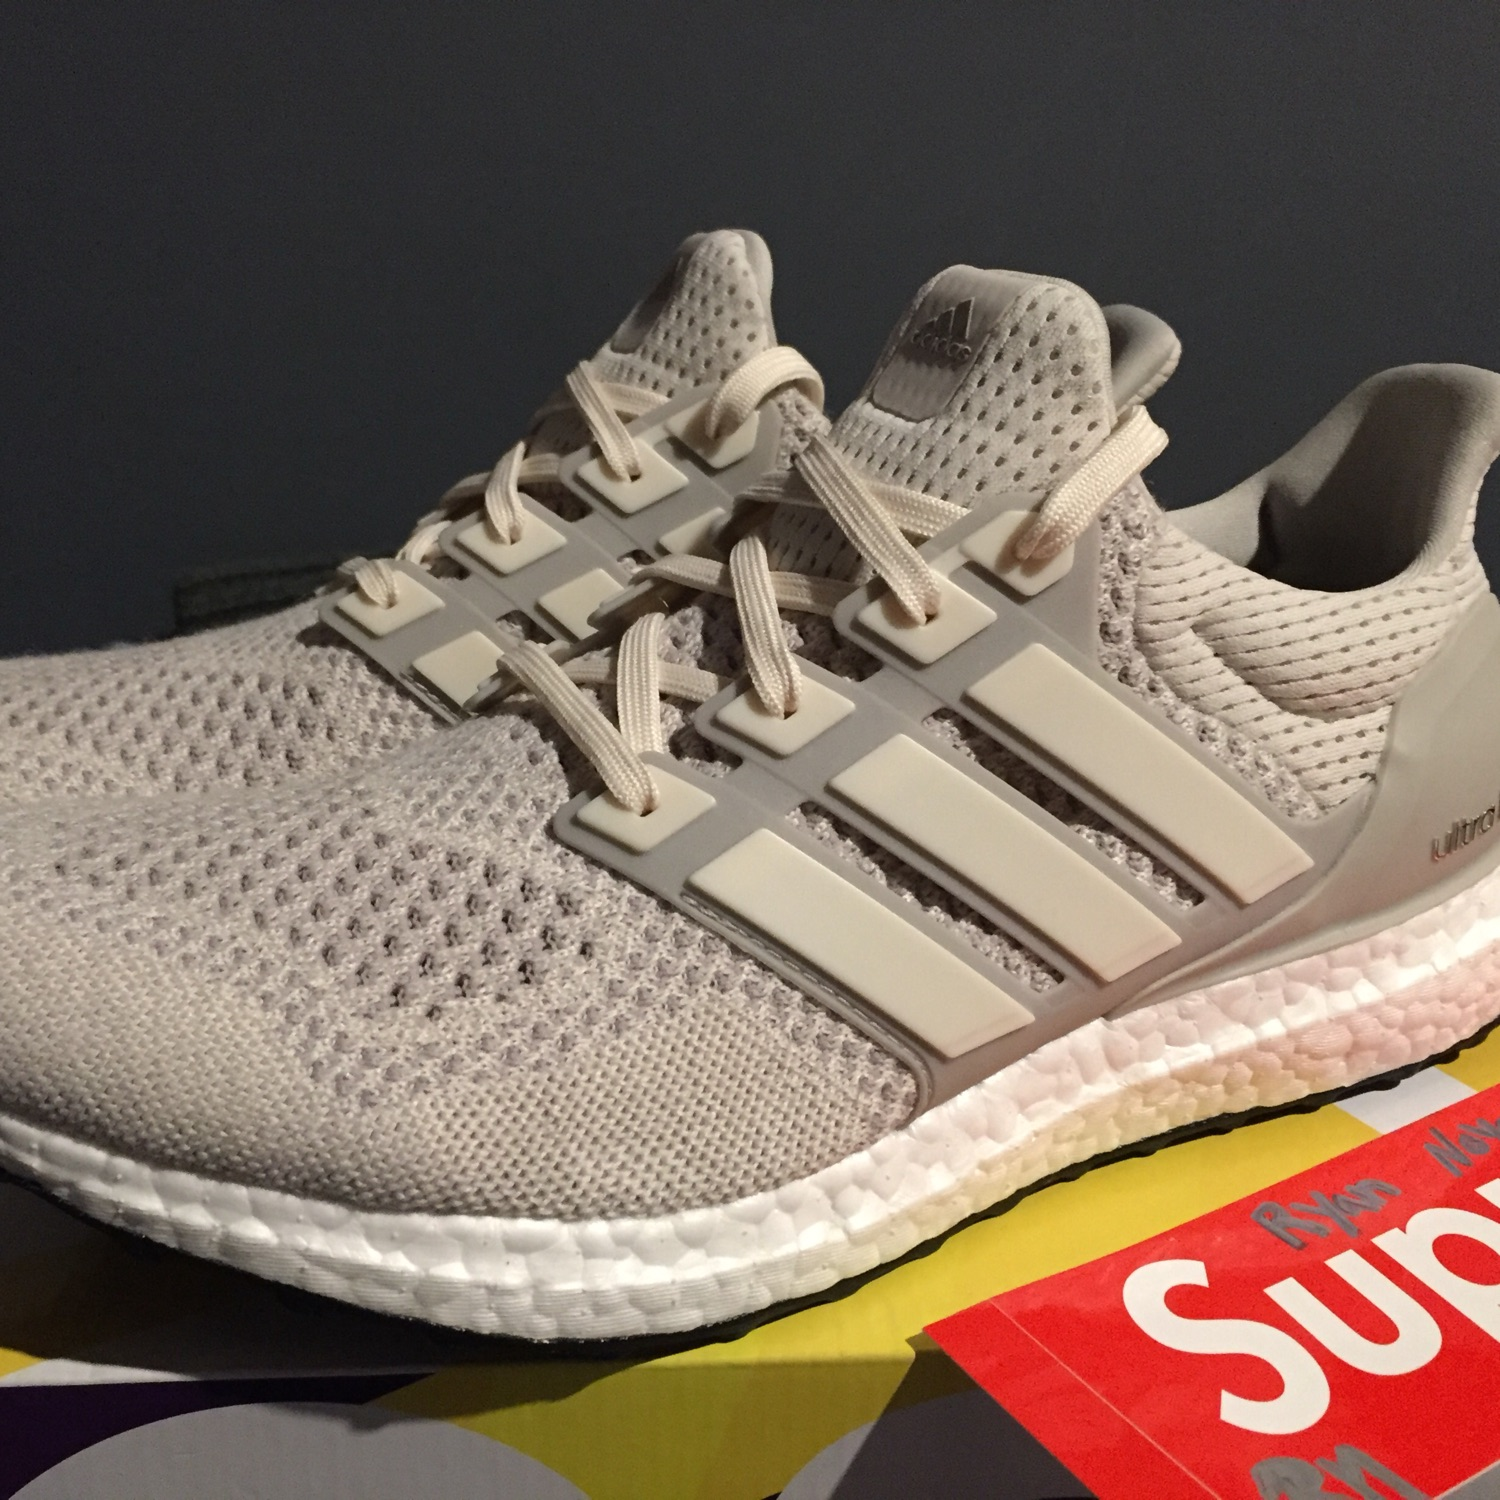 premium selection e1645 0f984 Adidas Ultra Boost 1.0 Cream/Chalk Ltd